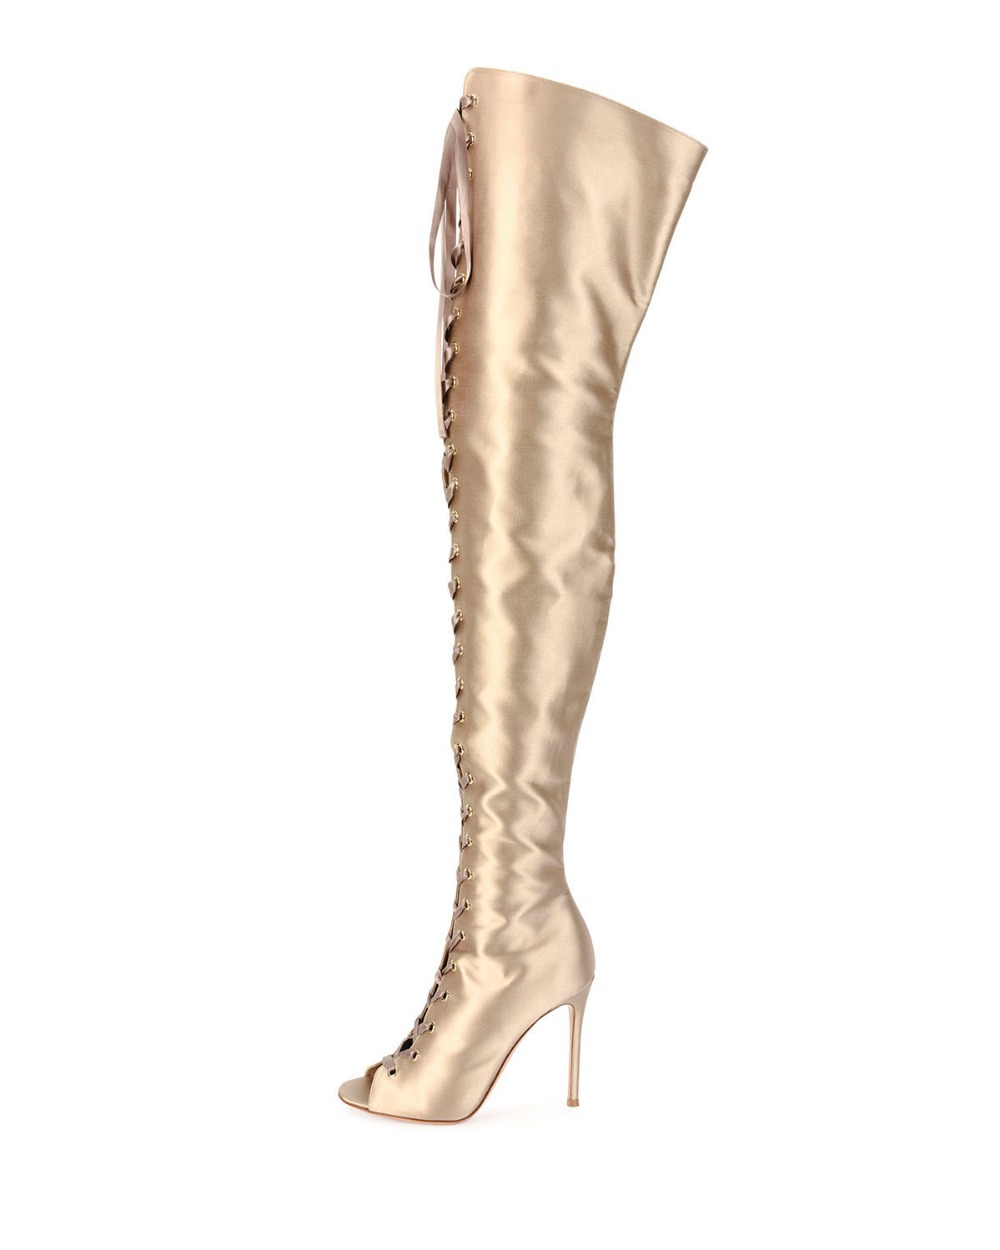 newest gold long boots 2018 spring autumn lace up thigh high boots women peep toe sexy high heels over the knee boots cut-outs 2017 spring newest women boots super high thin heels over the knee peep toe designer platform boots cross tied women boots